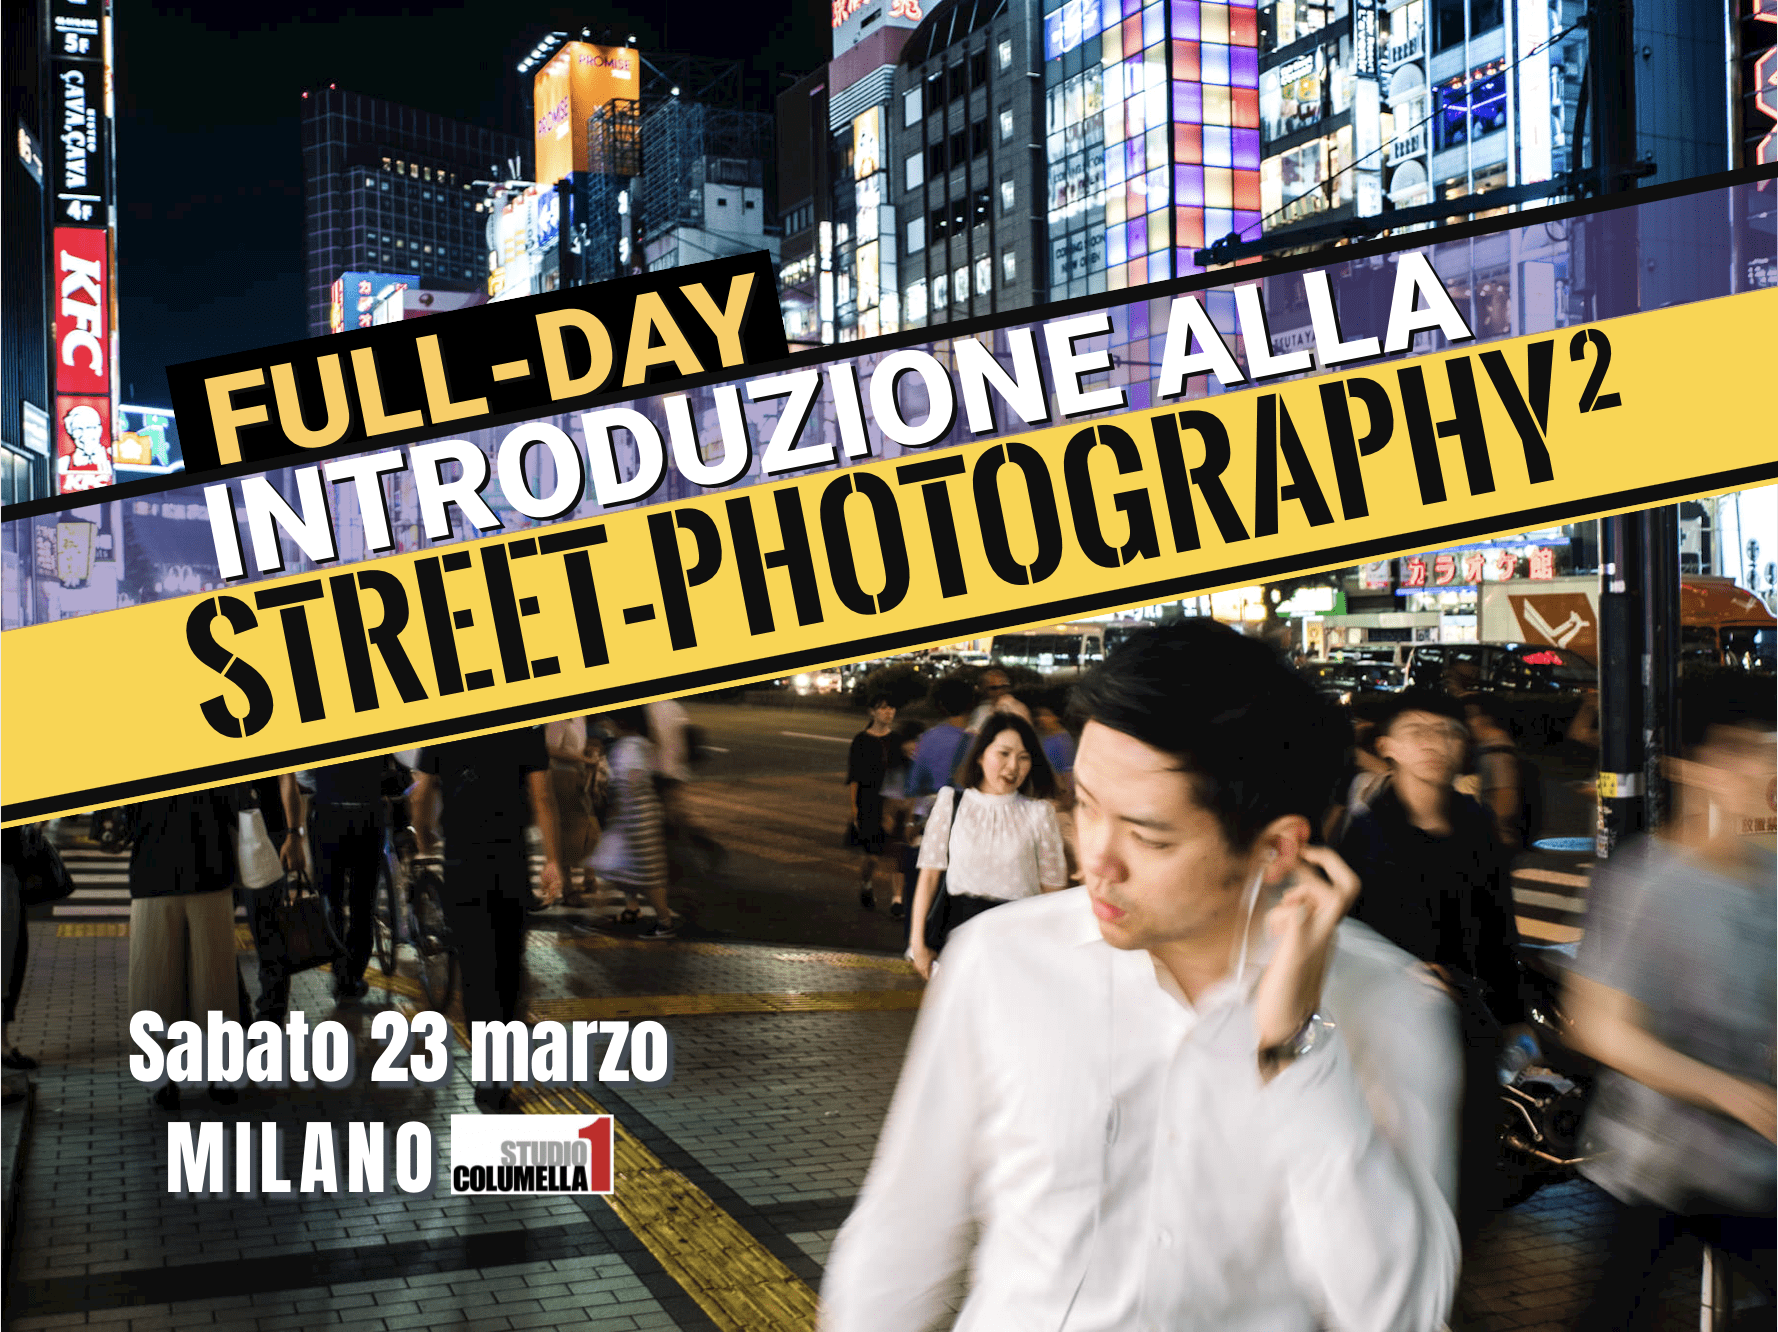 locandina workshop street photography milano